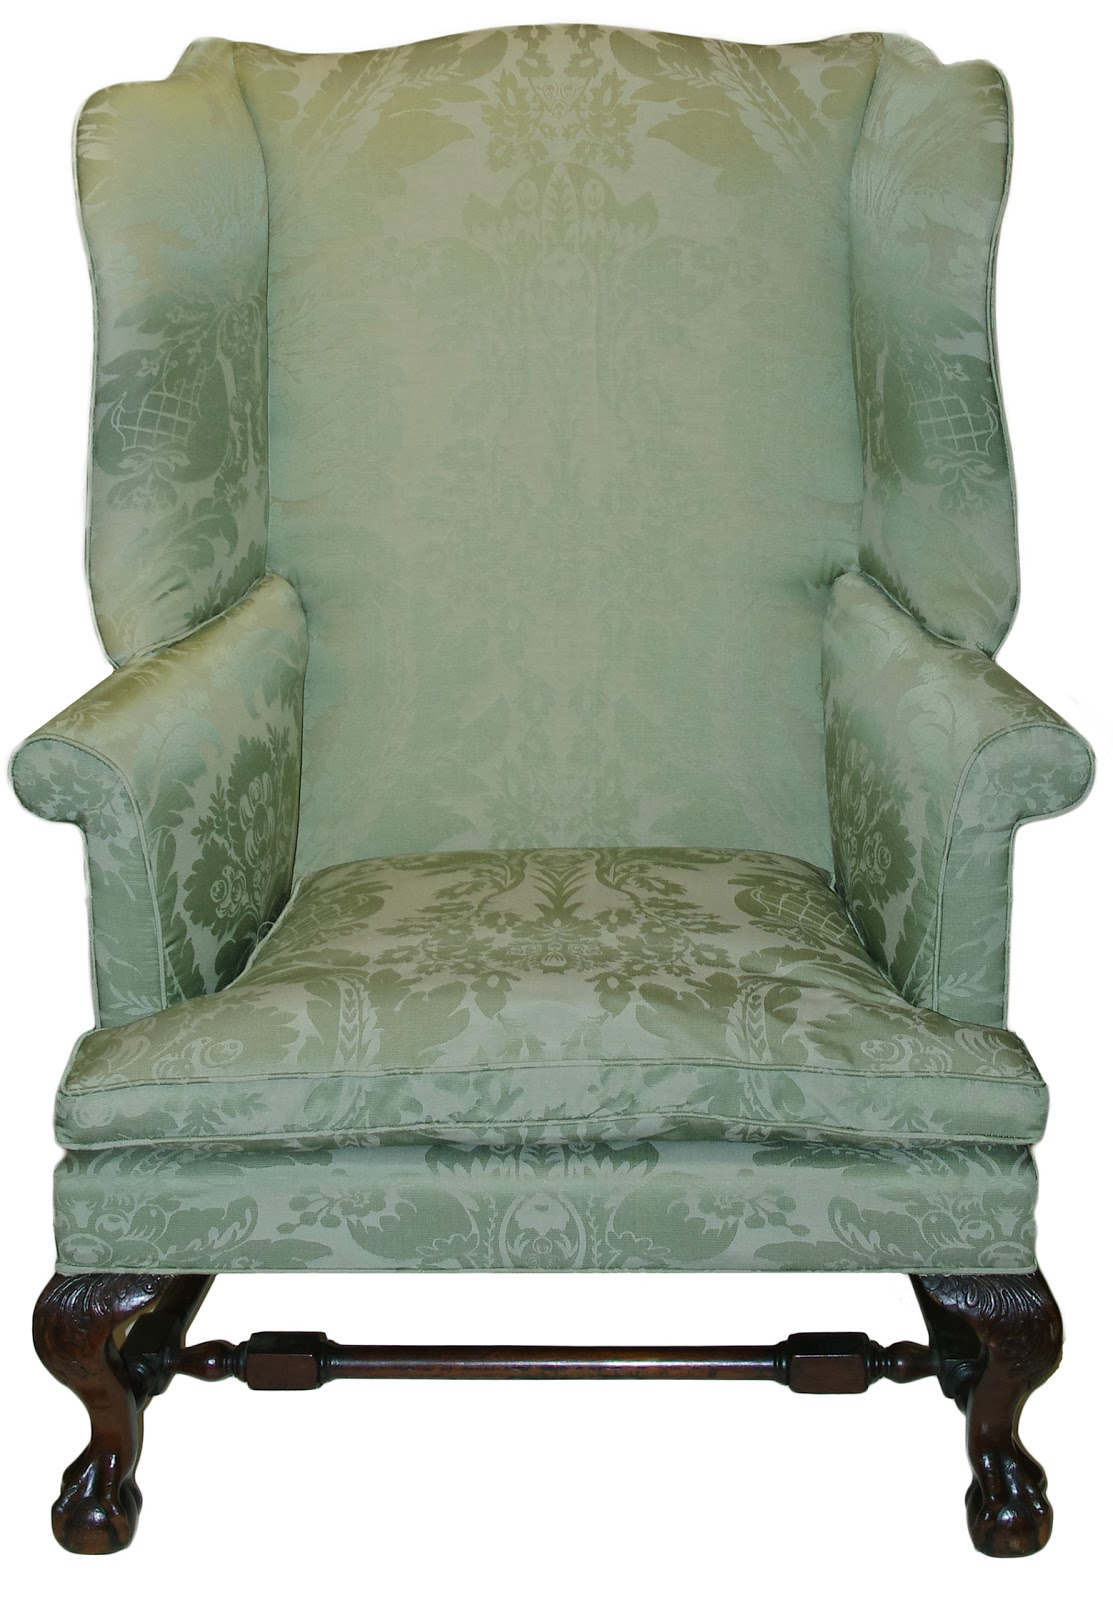 Offering Of The Day: A Chippendale Carved And Figured Mahogany Easy Chair